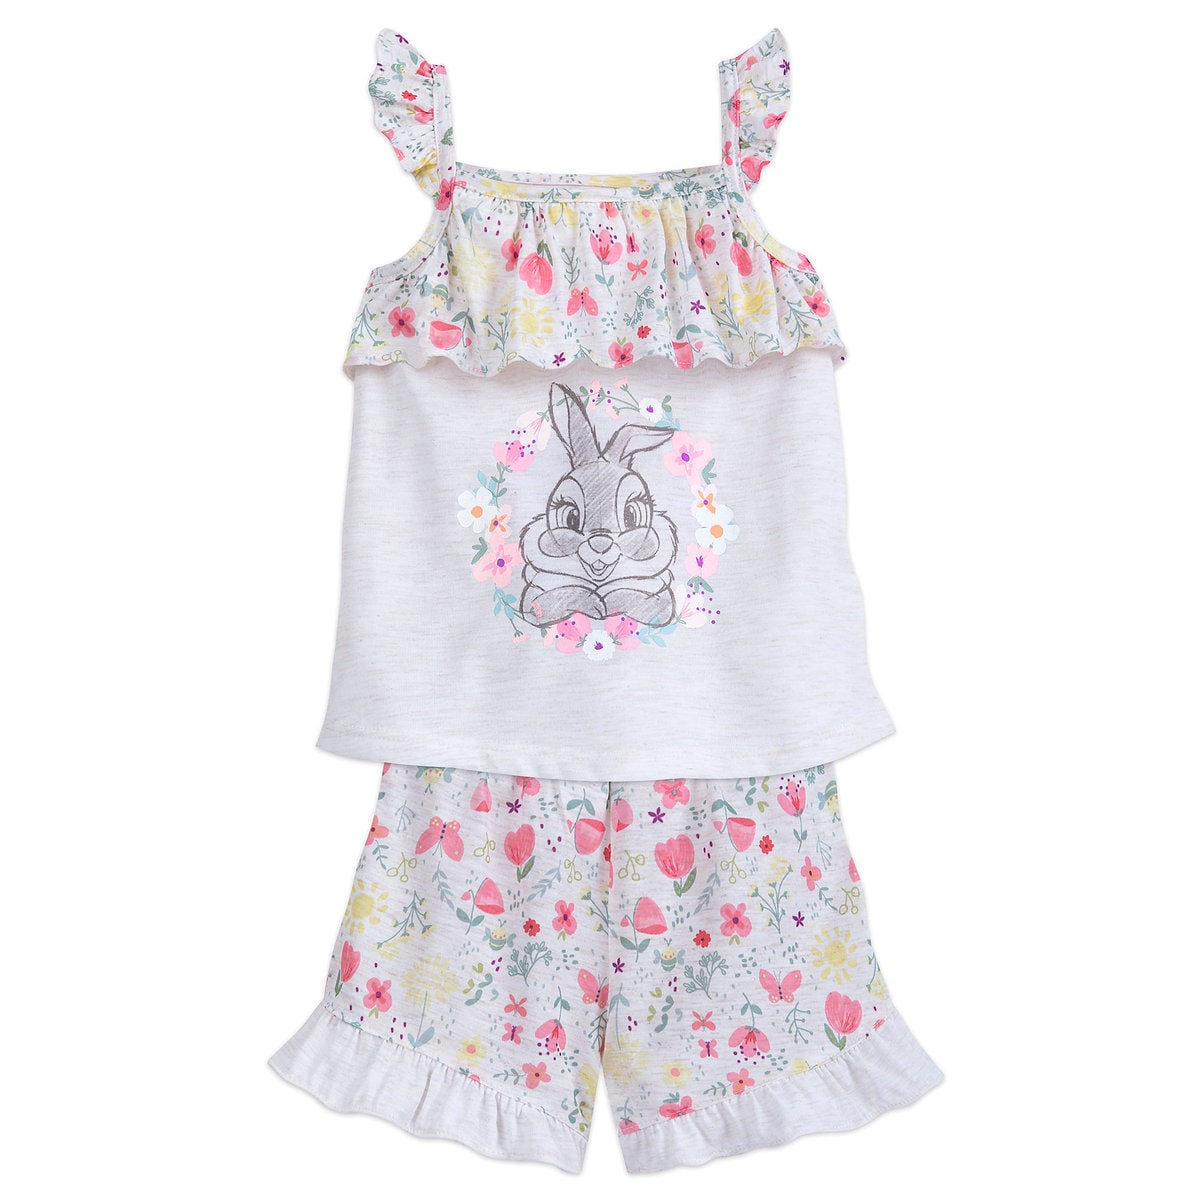 340ef5a65 Product Image of Miss Bunny Pajama Set for Girls # 1